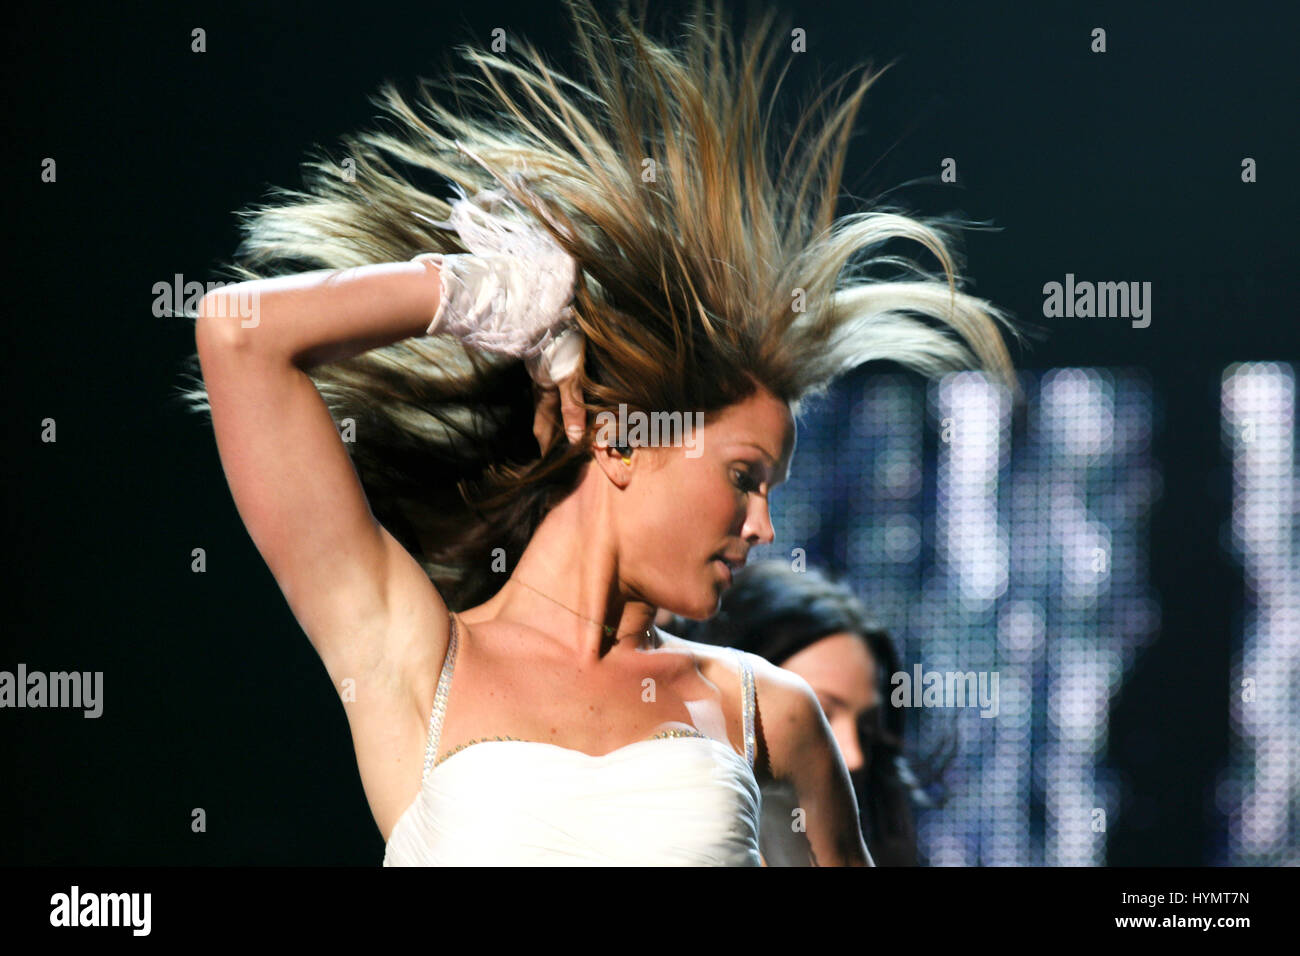 MARIE SERNEHOLT Swedish singer in qualifying contest for  Eurovision song contest 2009 - Stock Image